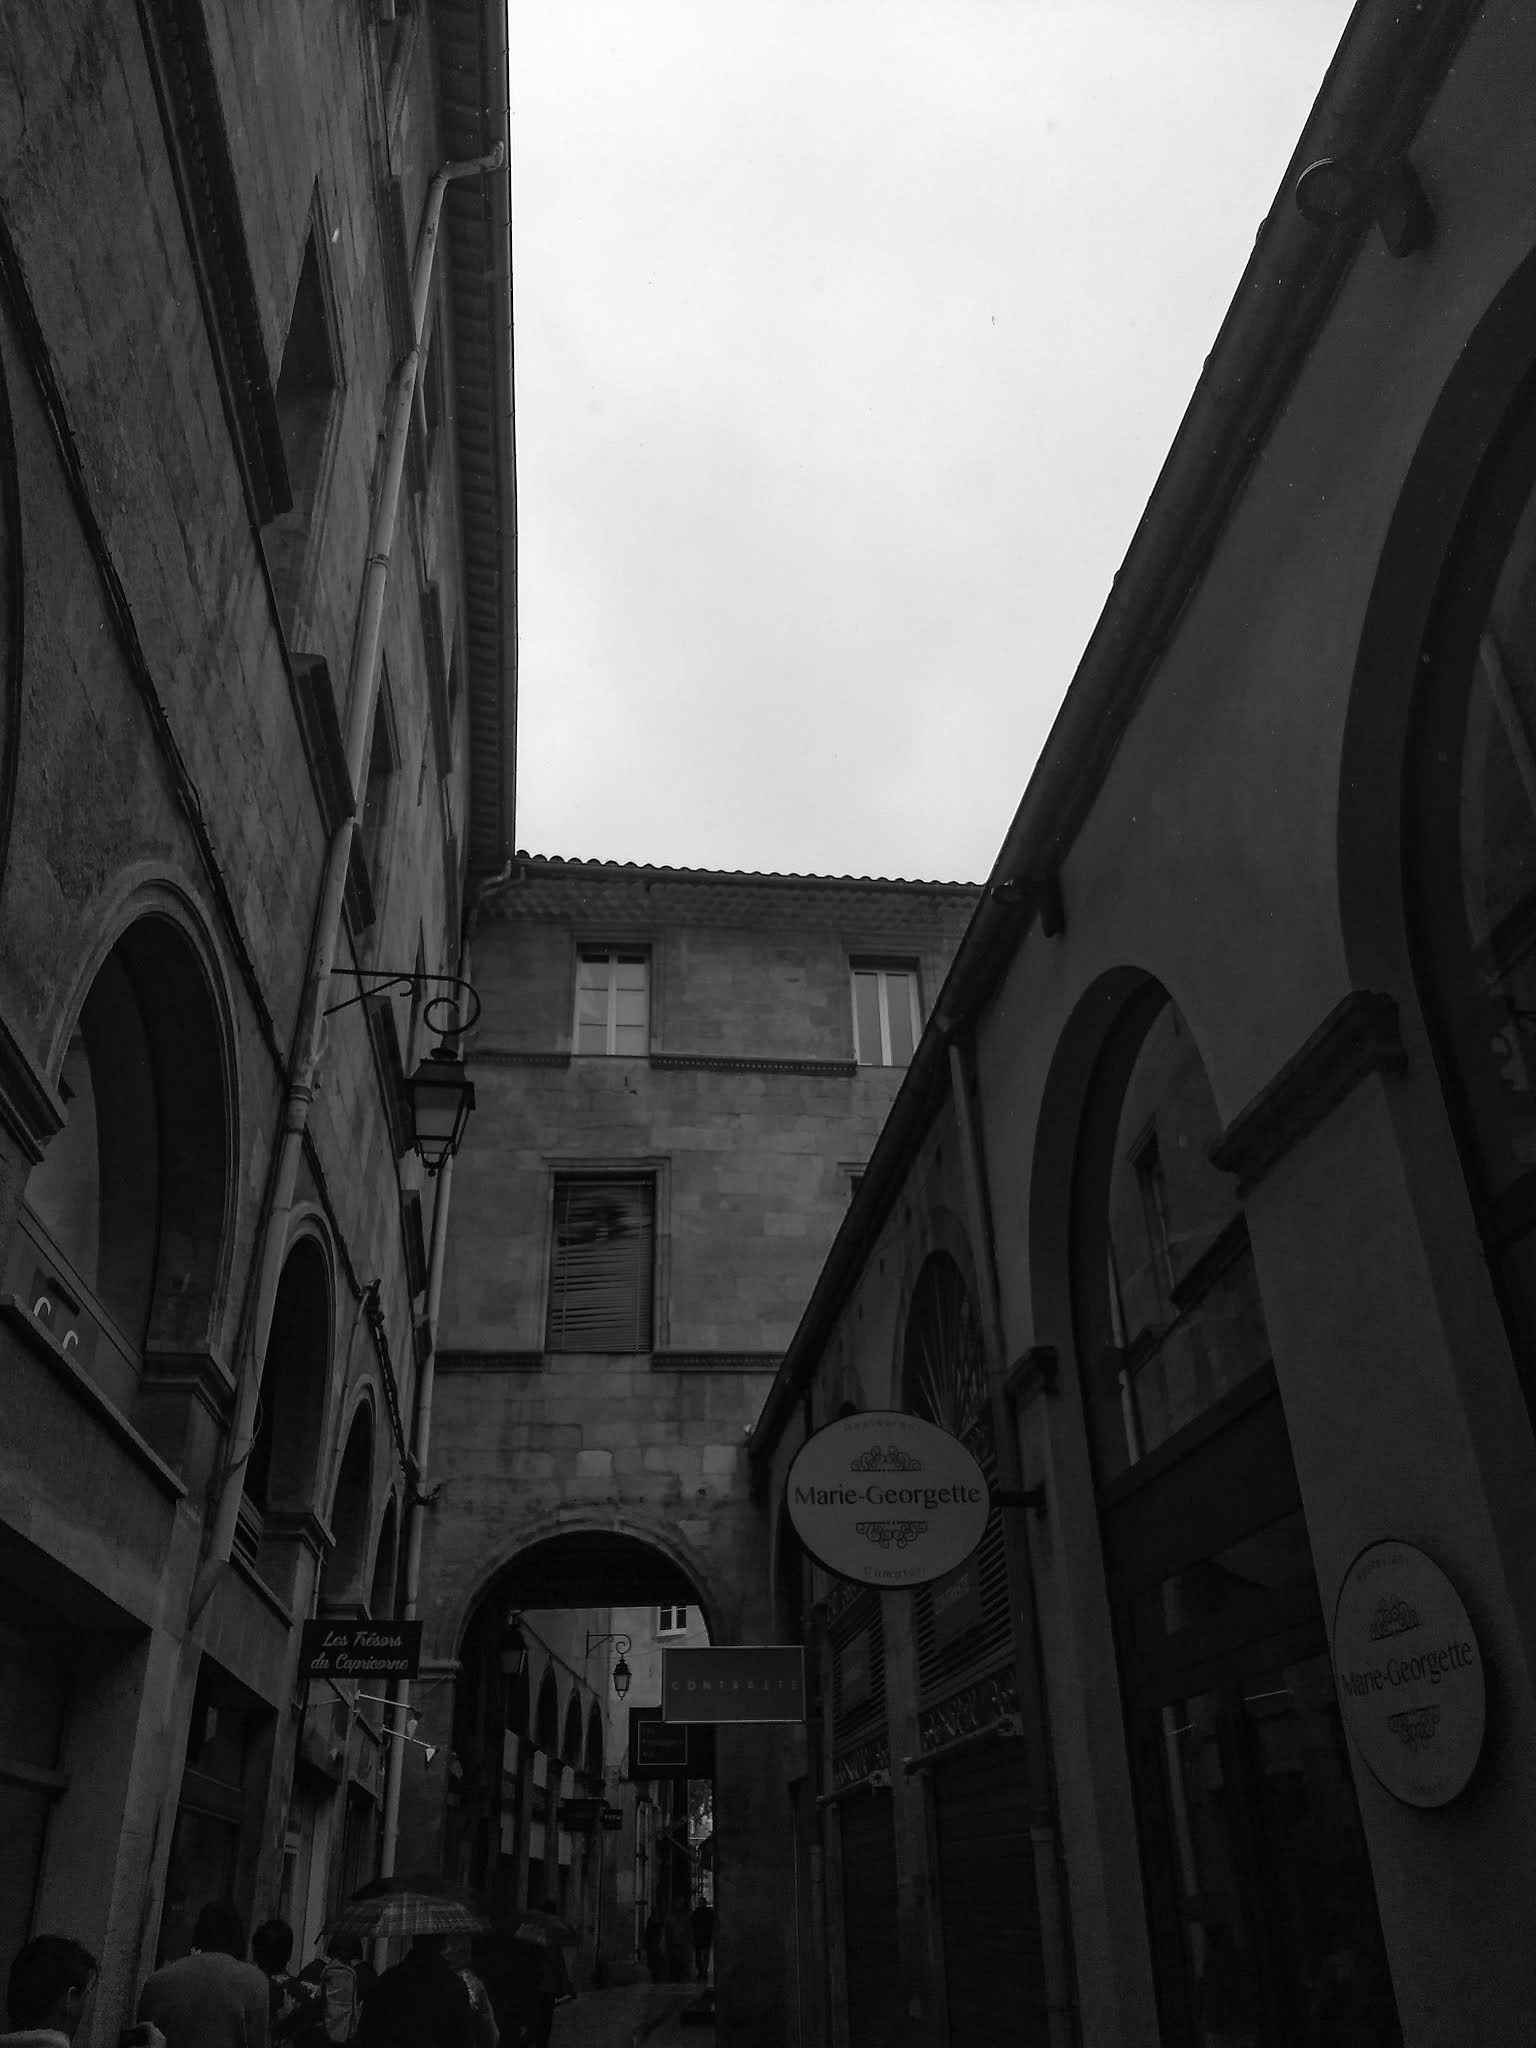 Black and white image of Passage Agard in Aix-en-Provence, France.